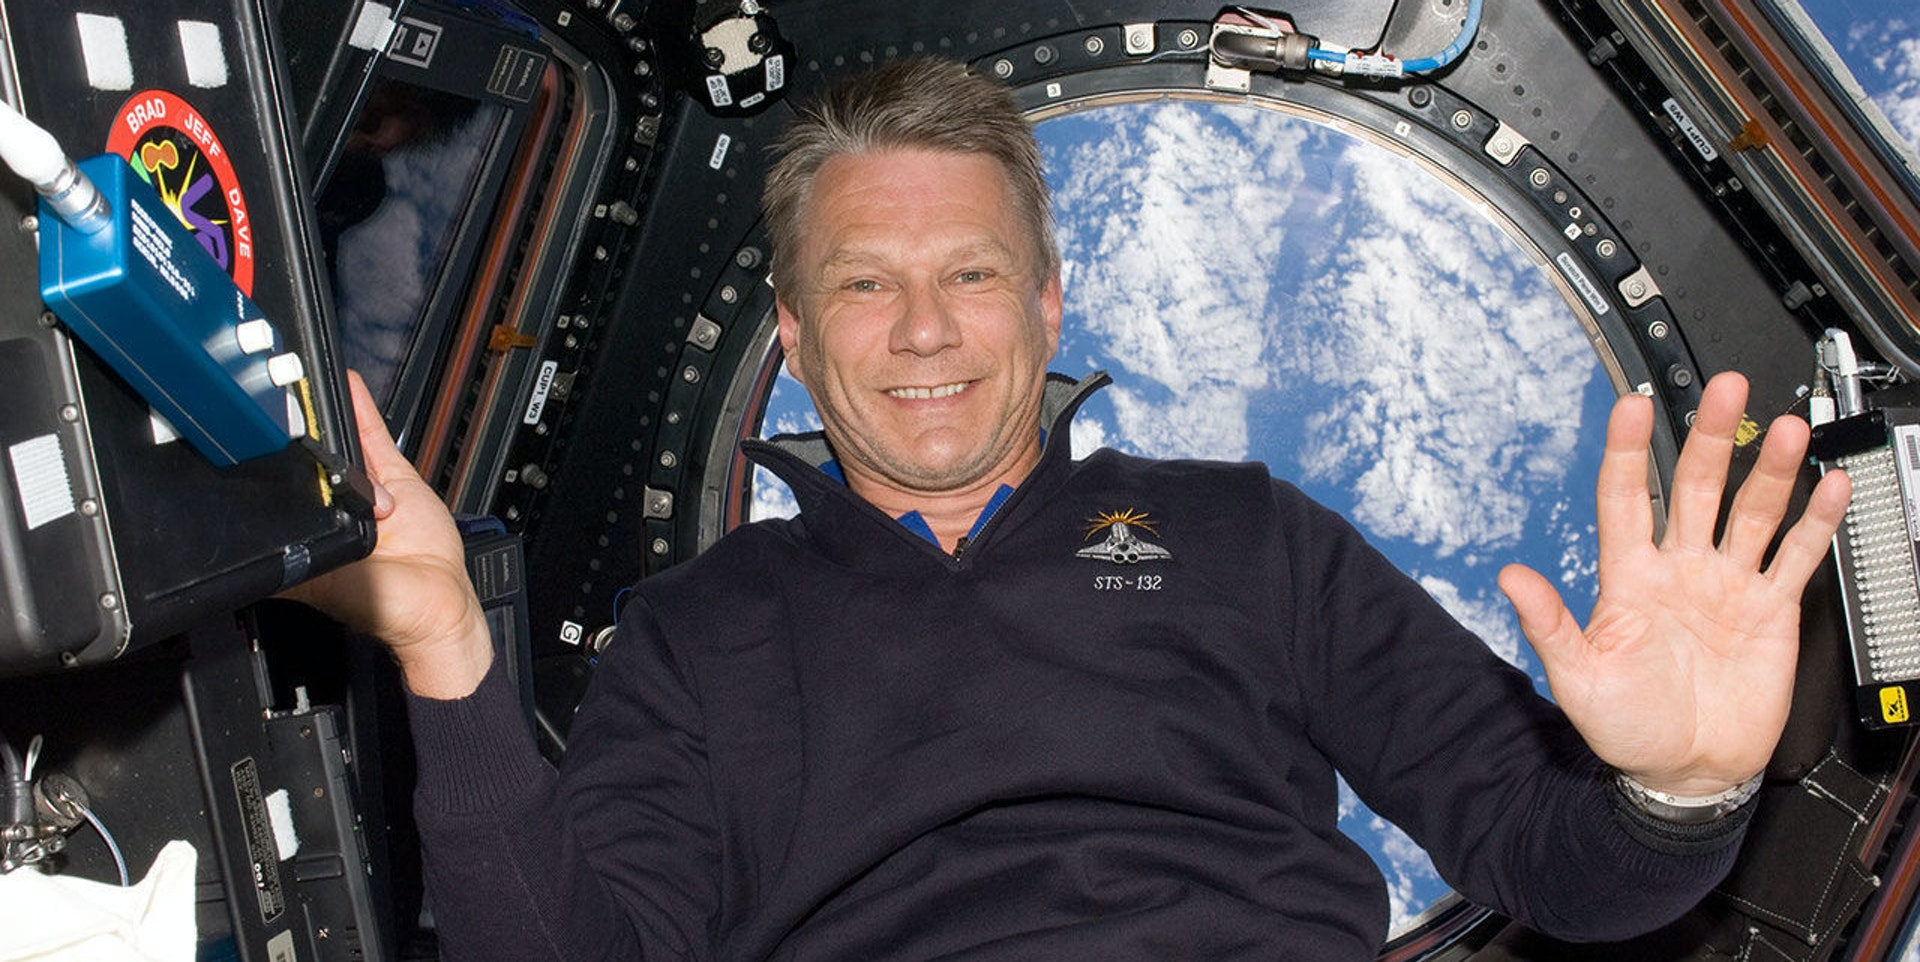 NASA Astronaut Piers Sellers has passed away at the age of 61.